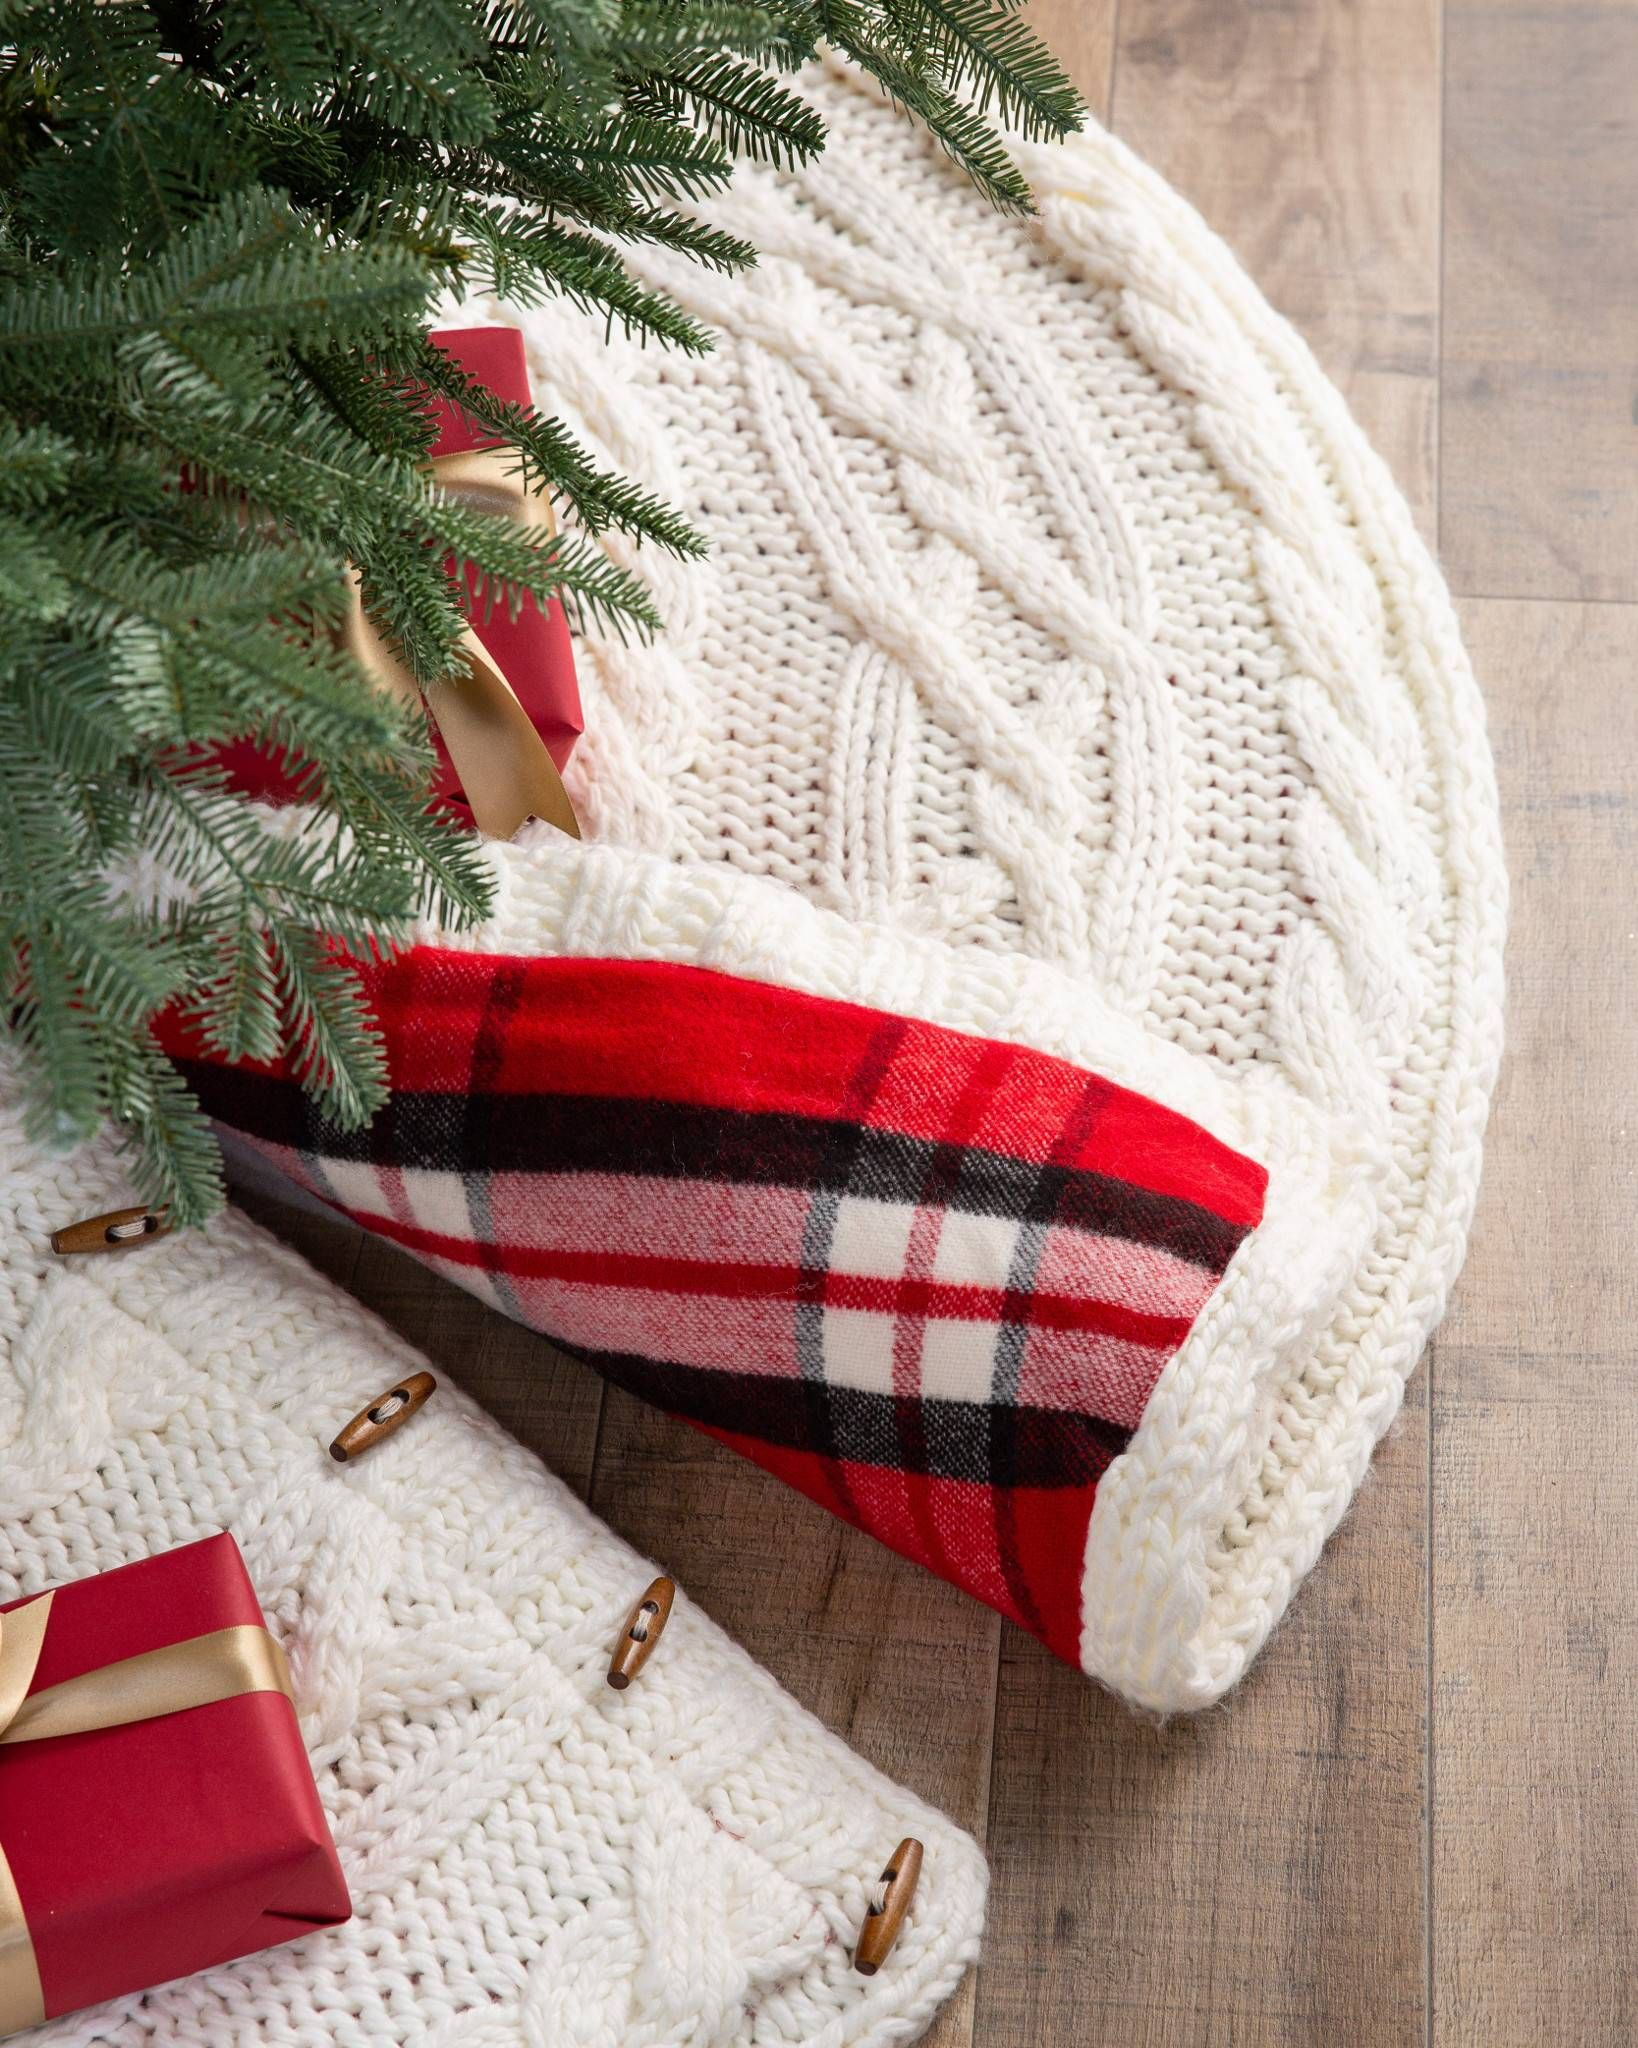 Cable Knit Reversible Christmas Tree Skirt Balsam Hill One Tree Skirt With Two Beautiful Design Knitted Christmas Decorations Tree Skirts Christmas Knitting